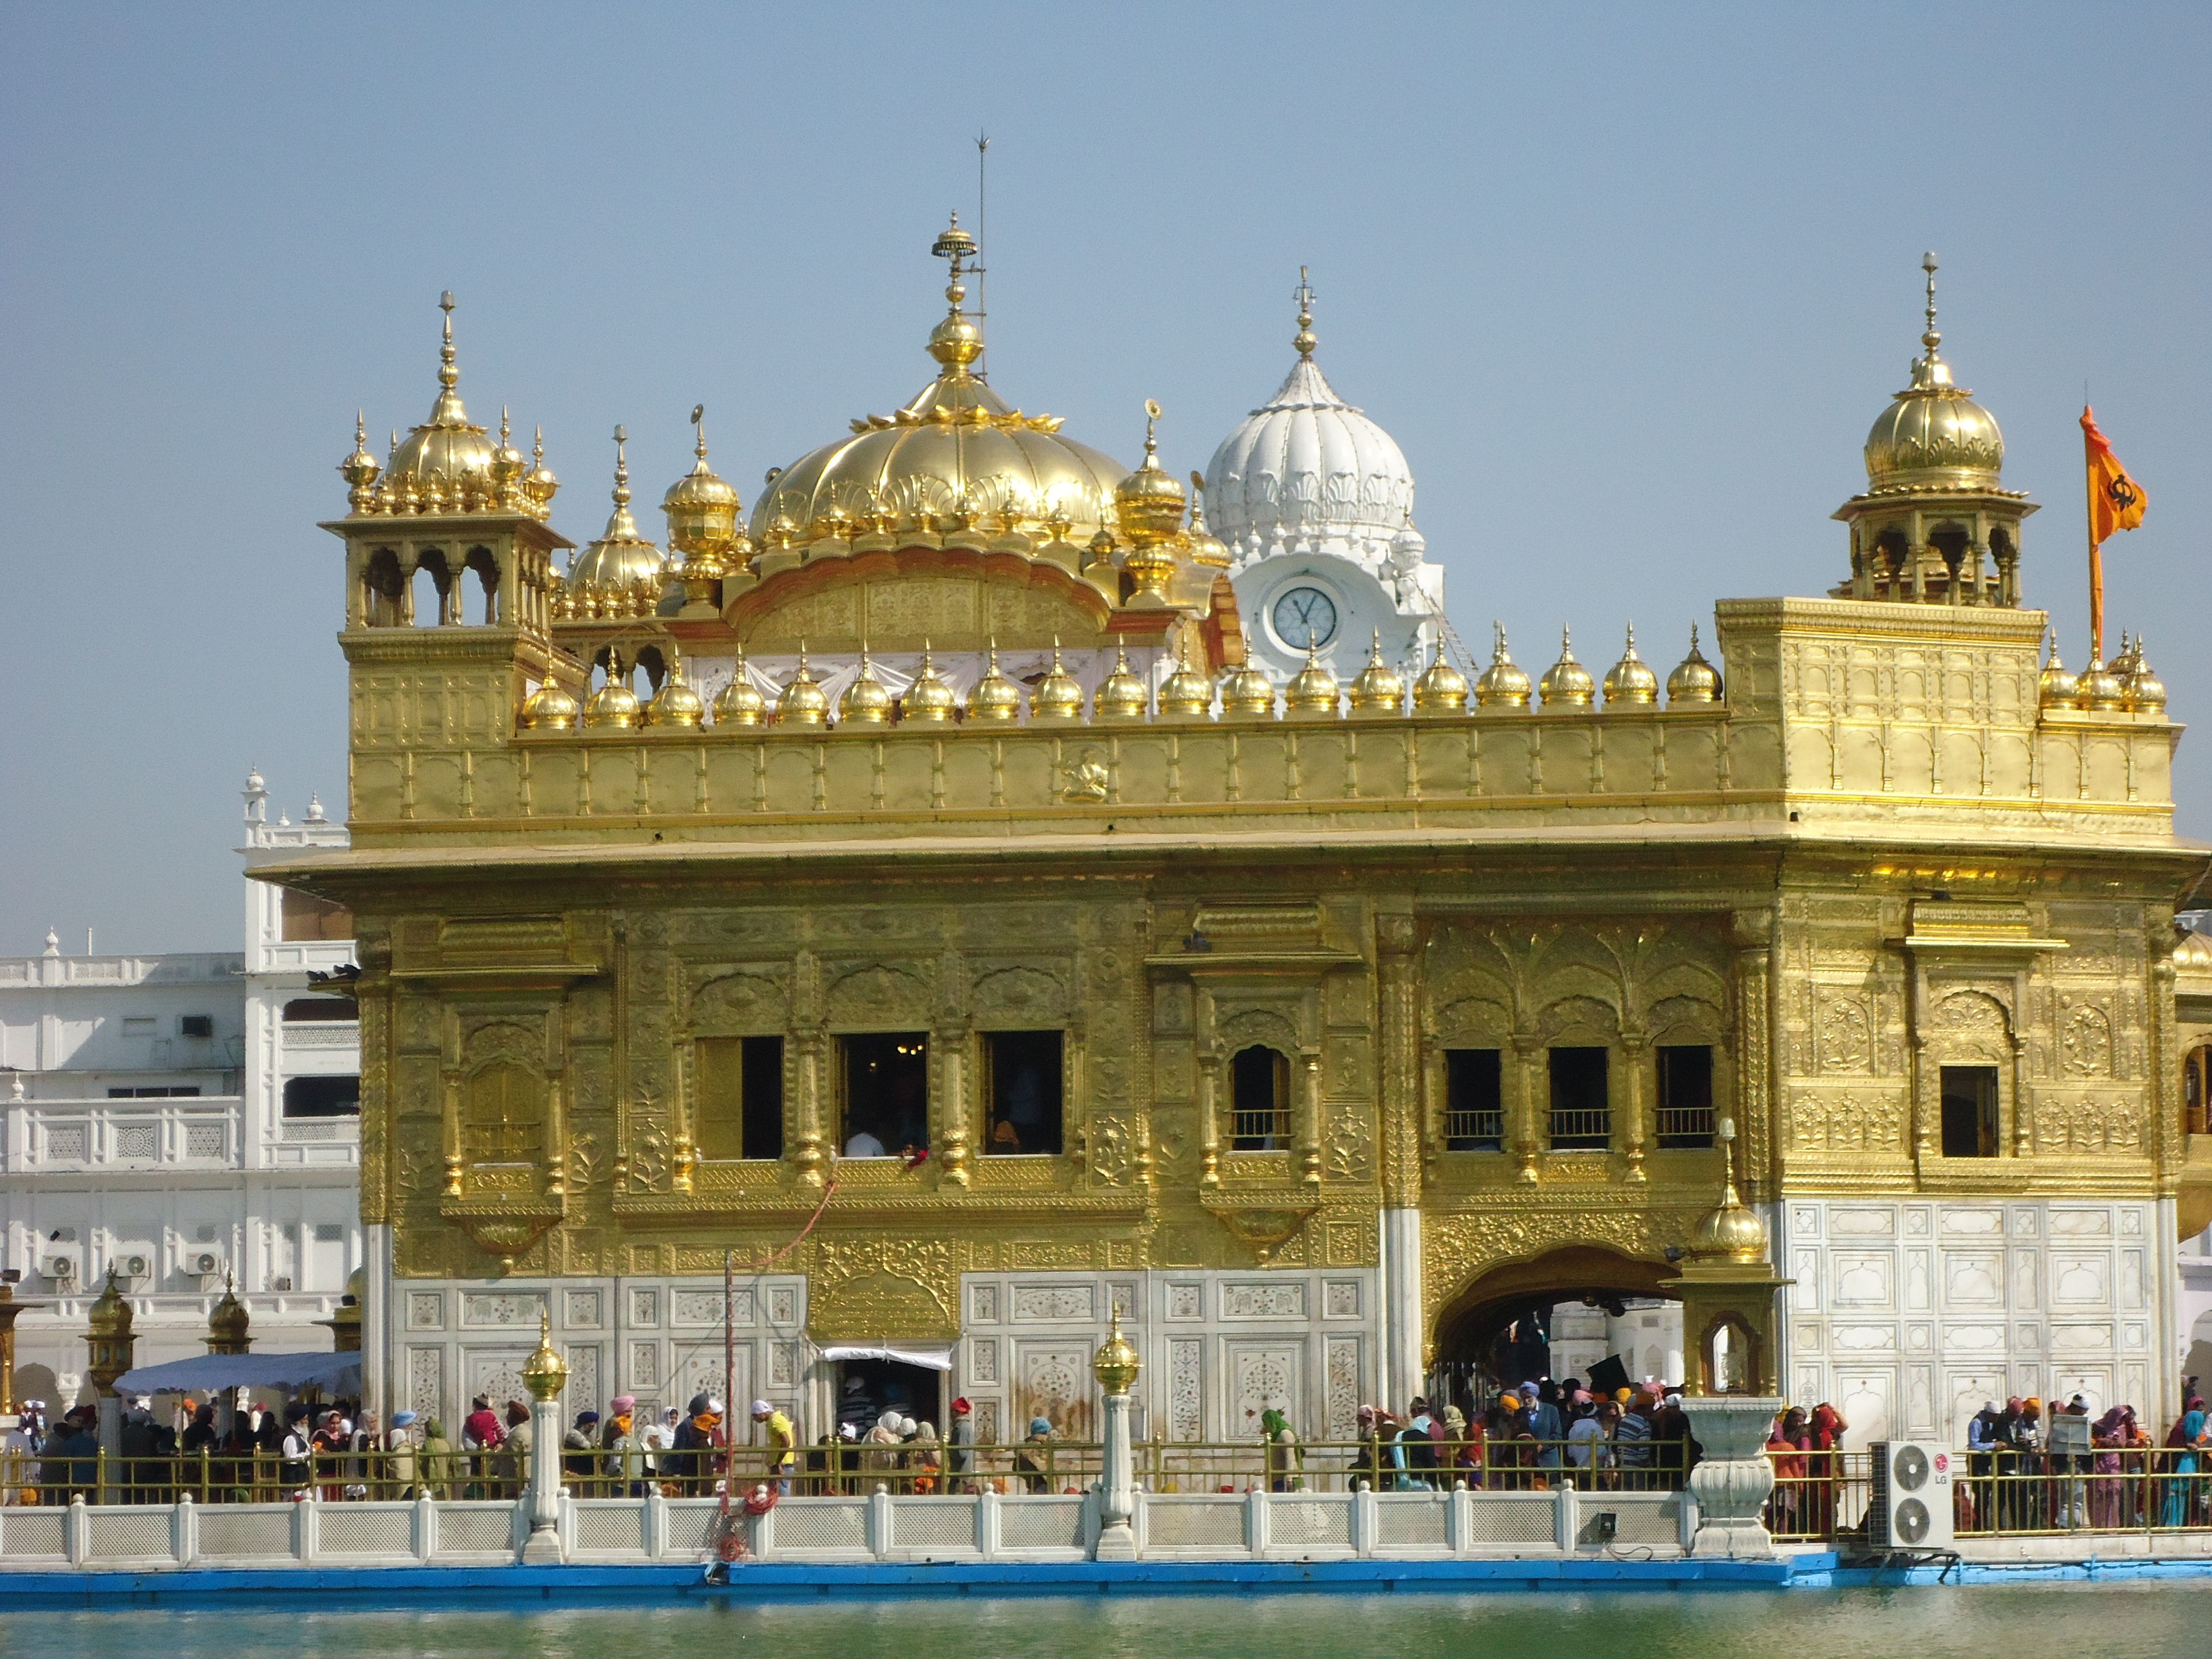 Golden Temple is the holiest Gurdwara of Sikhism, situated in the city of Amritsar, Punjab, India.